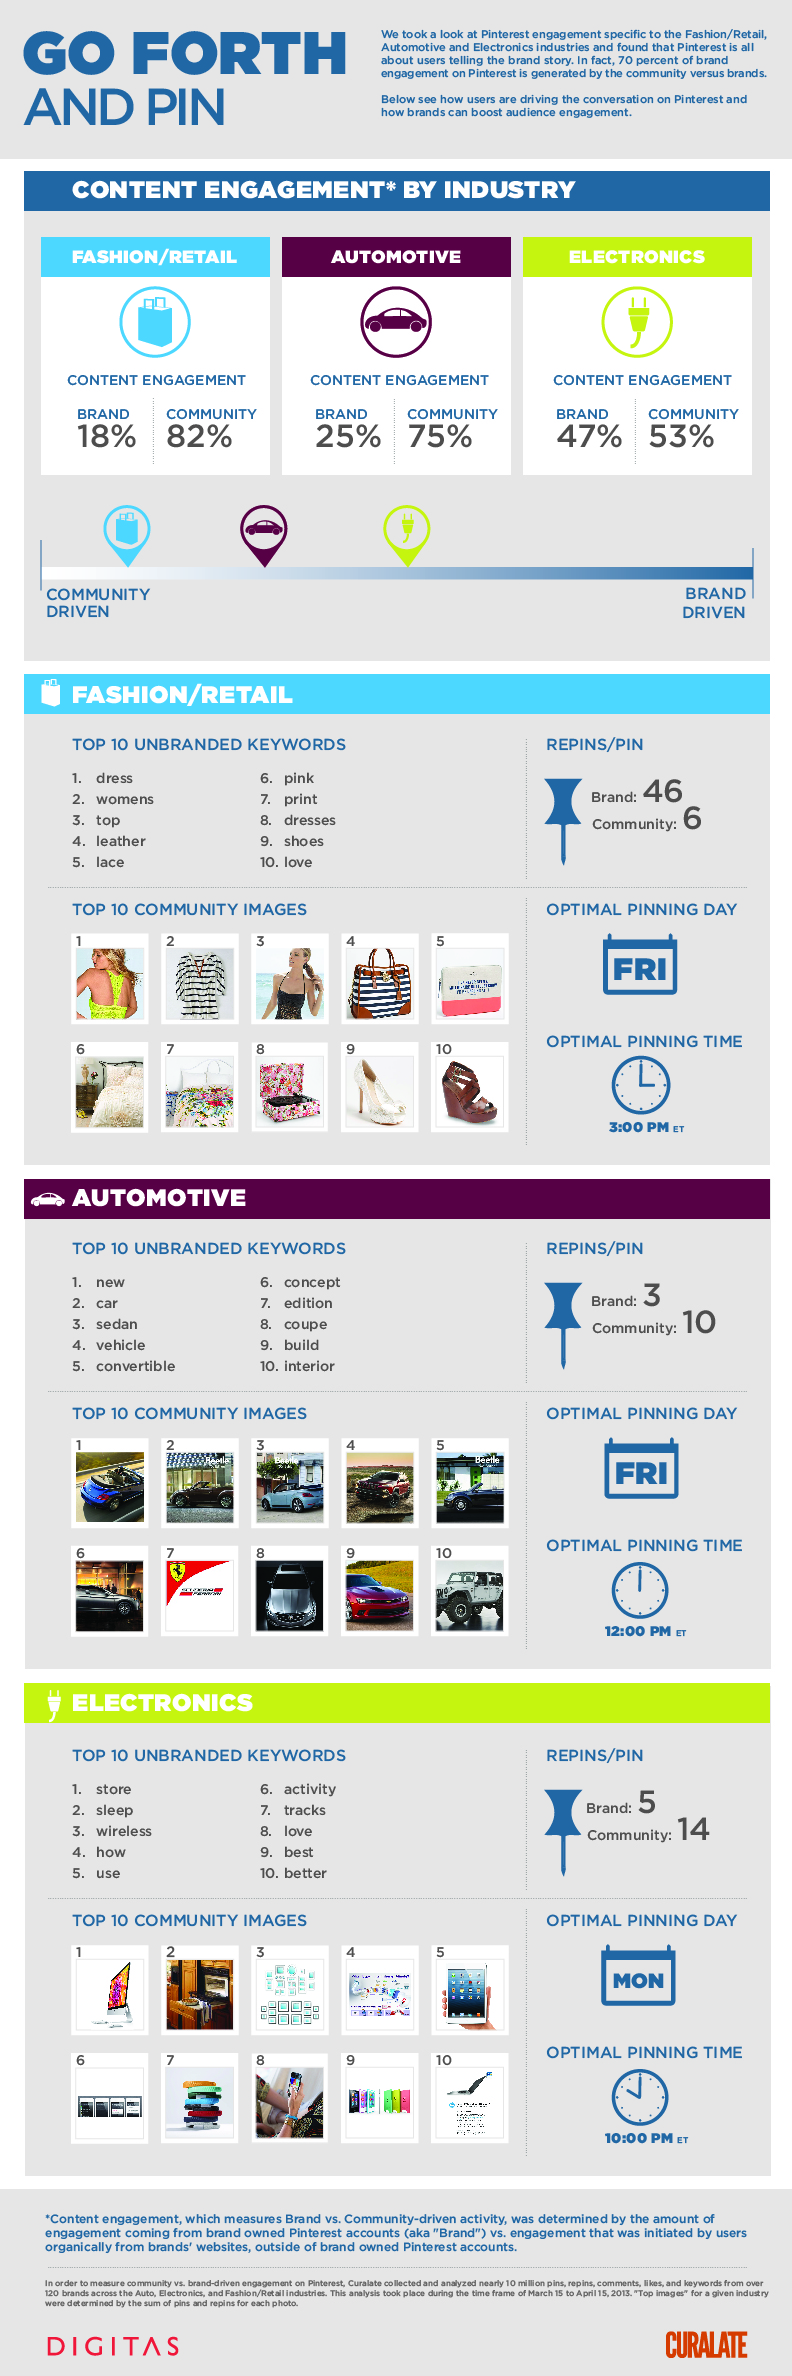 Most Pinned Categories on Pinterest